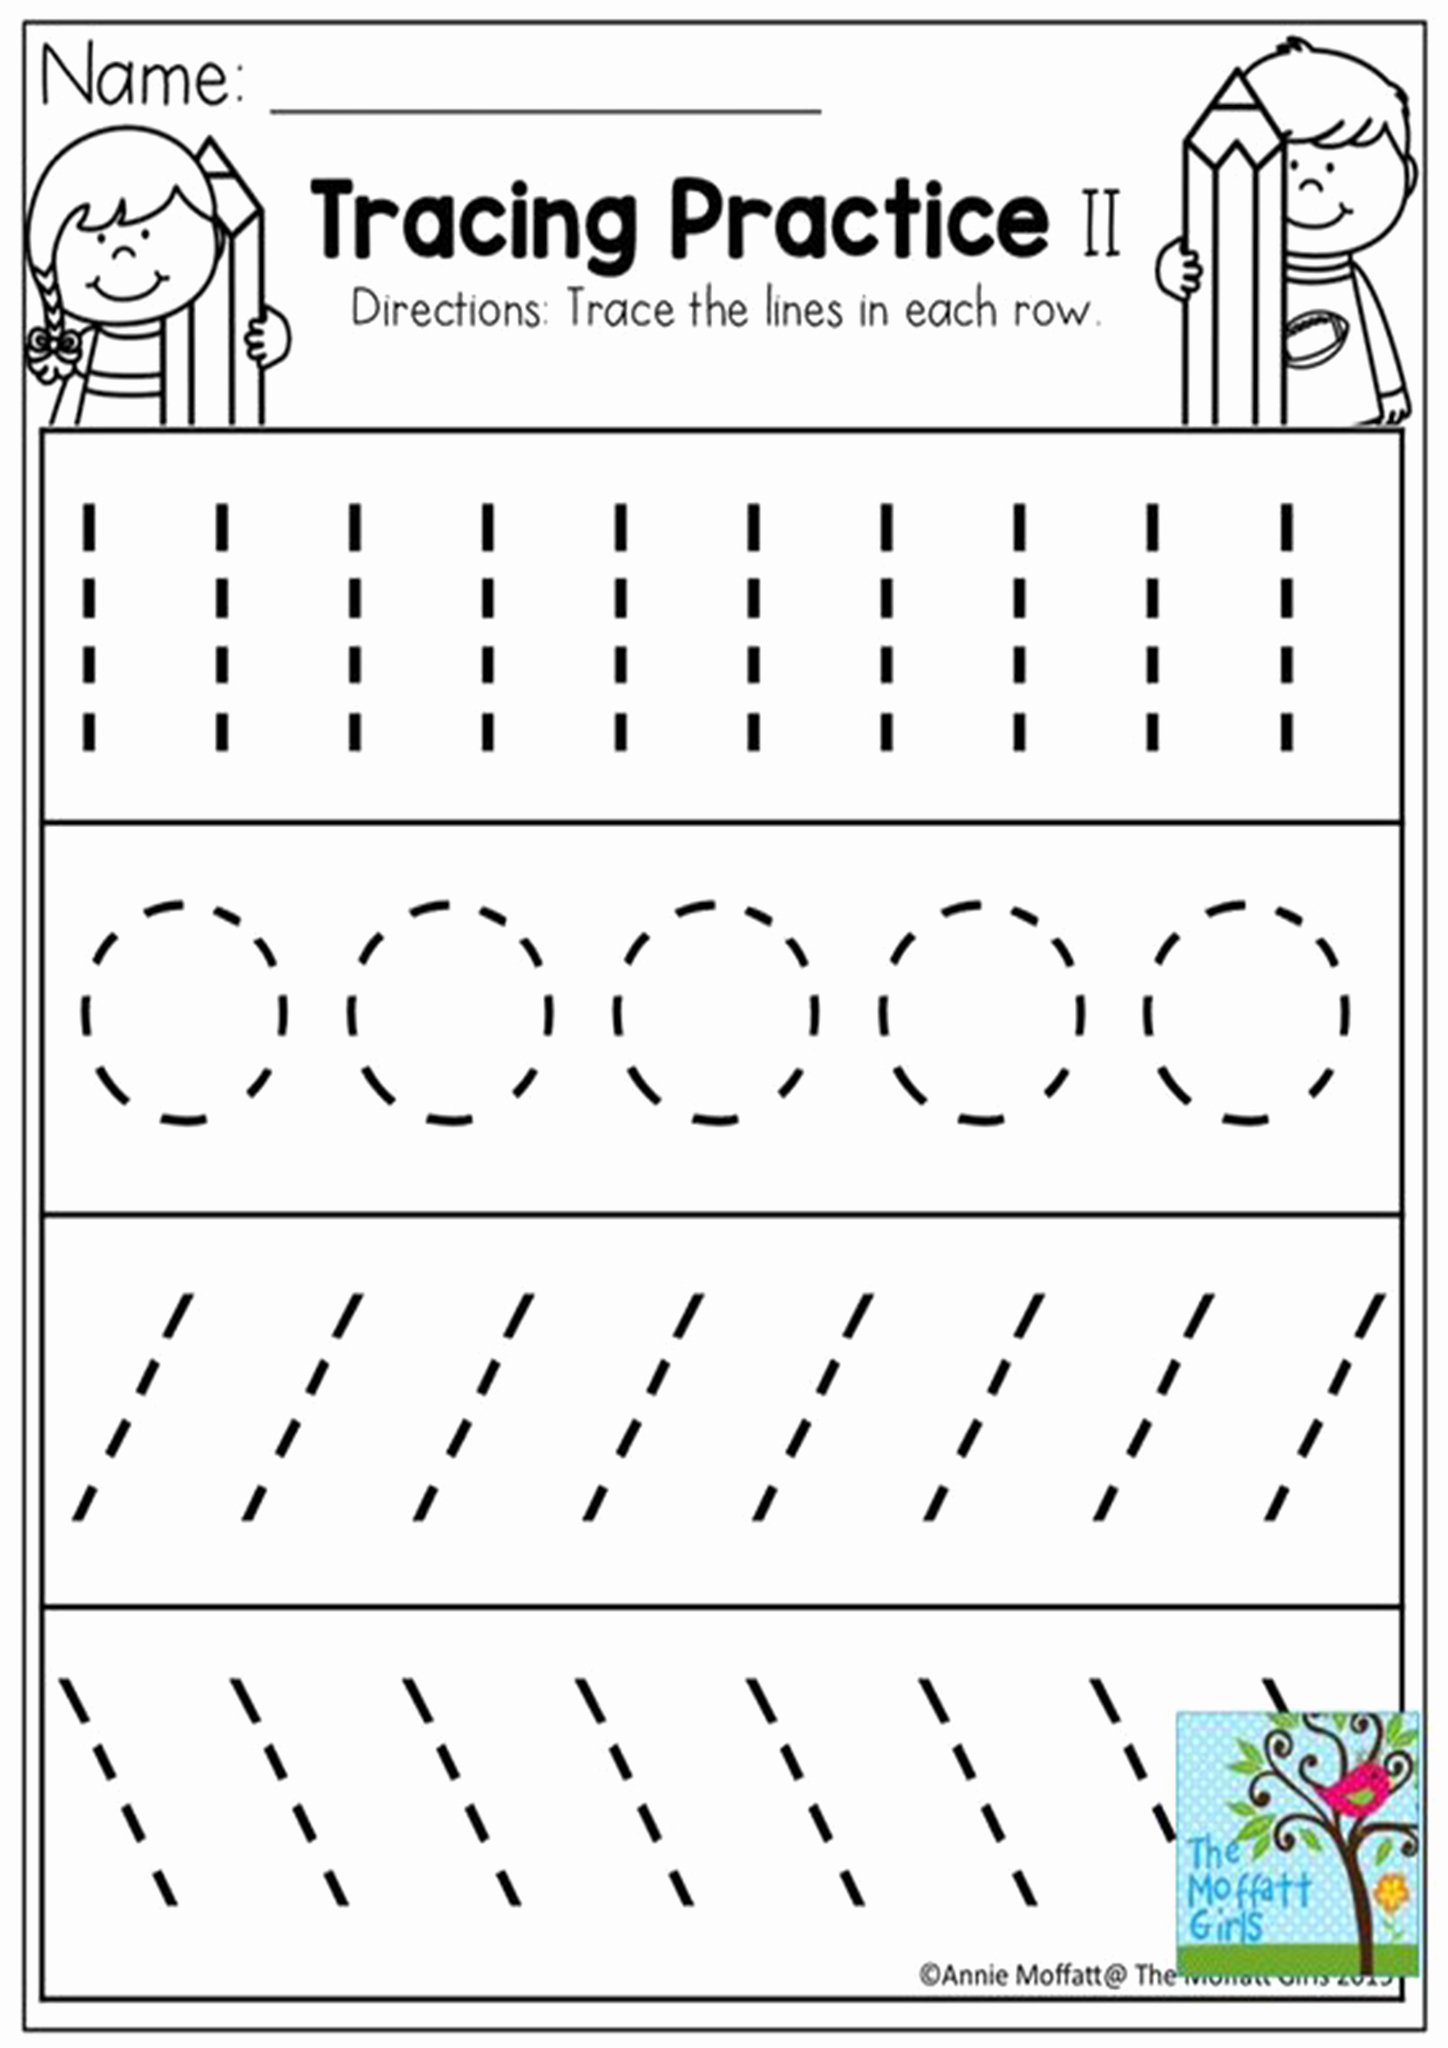 Straight Line Worksheets for Preschoolers Kids Free and Easy to Print Tracing Lines Worksheets Tulamama